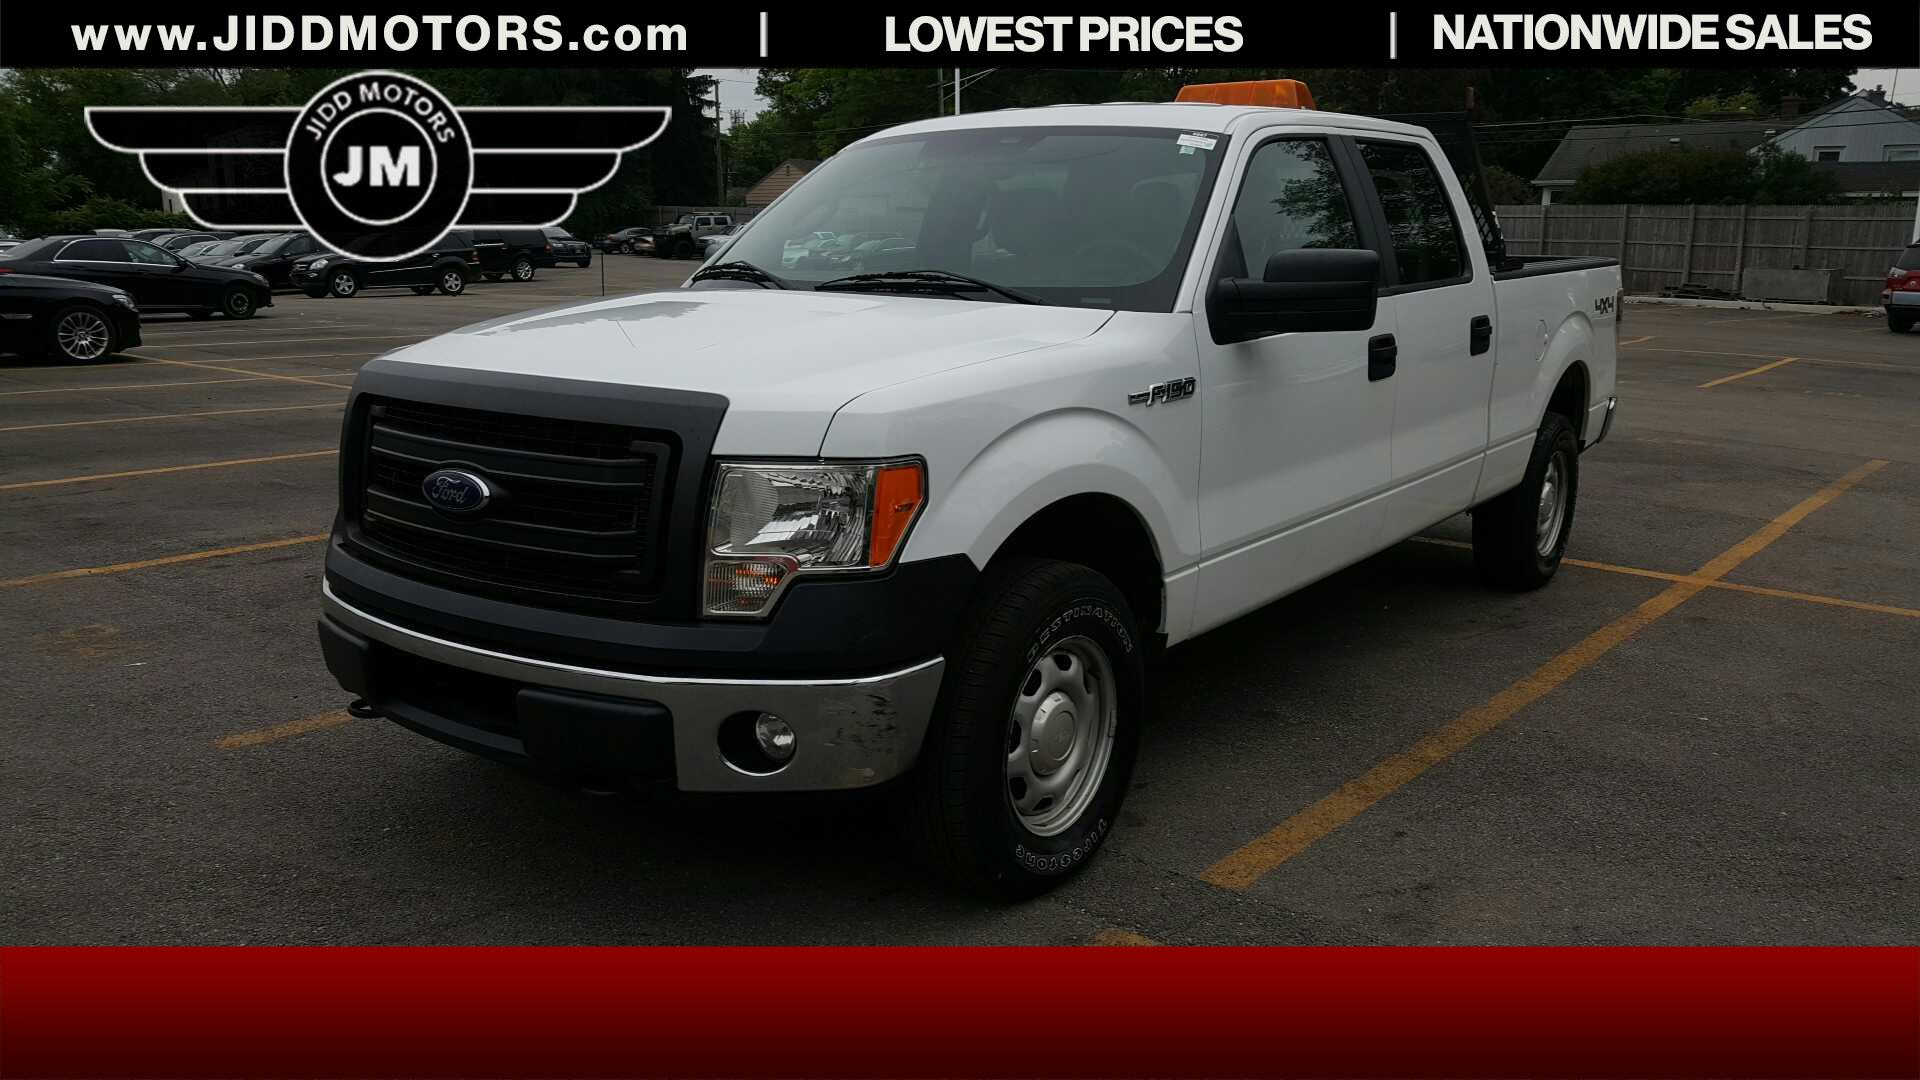 50 Best Used Ford F 150 For Sale Savings From 3499 Fuse Diagram 2002 Pick Up